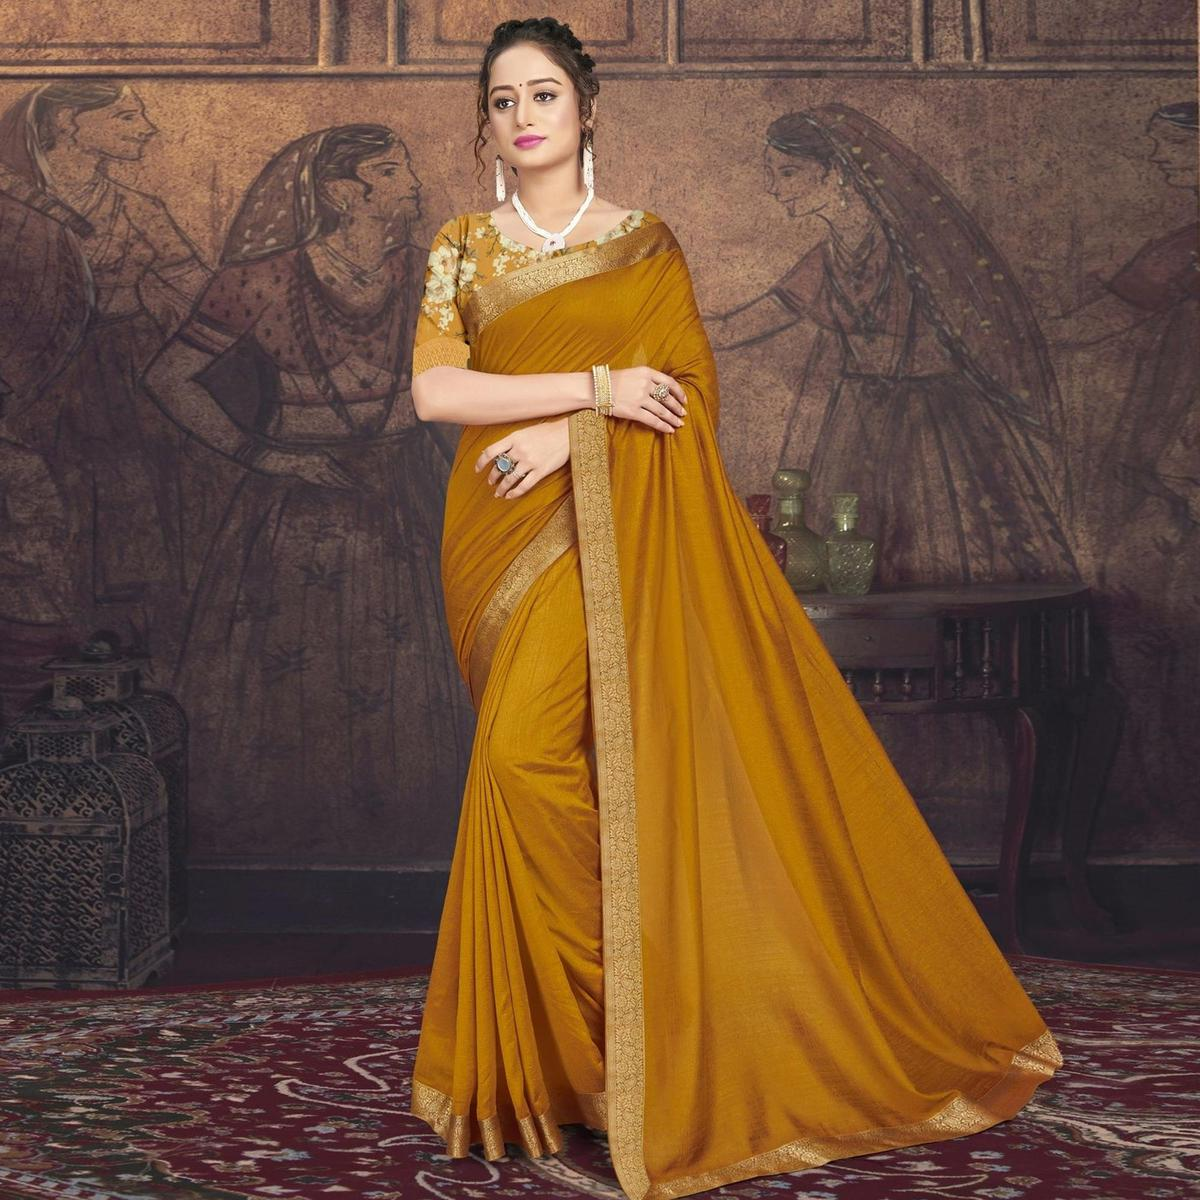 Triveni Gold Metallic Colored Chanderi Silk Casual Wear Solid Saree With Blouse Piece